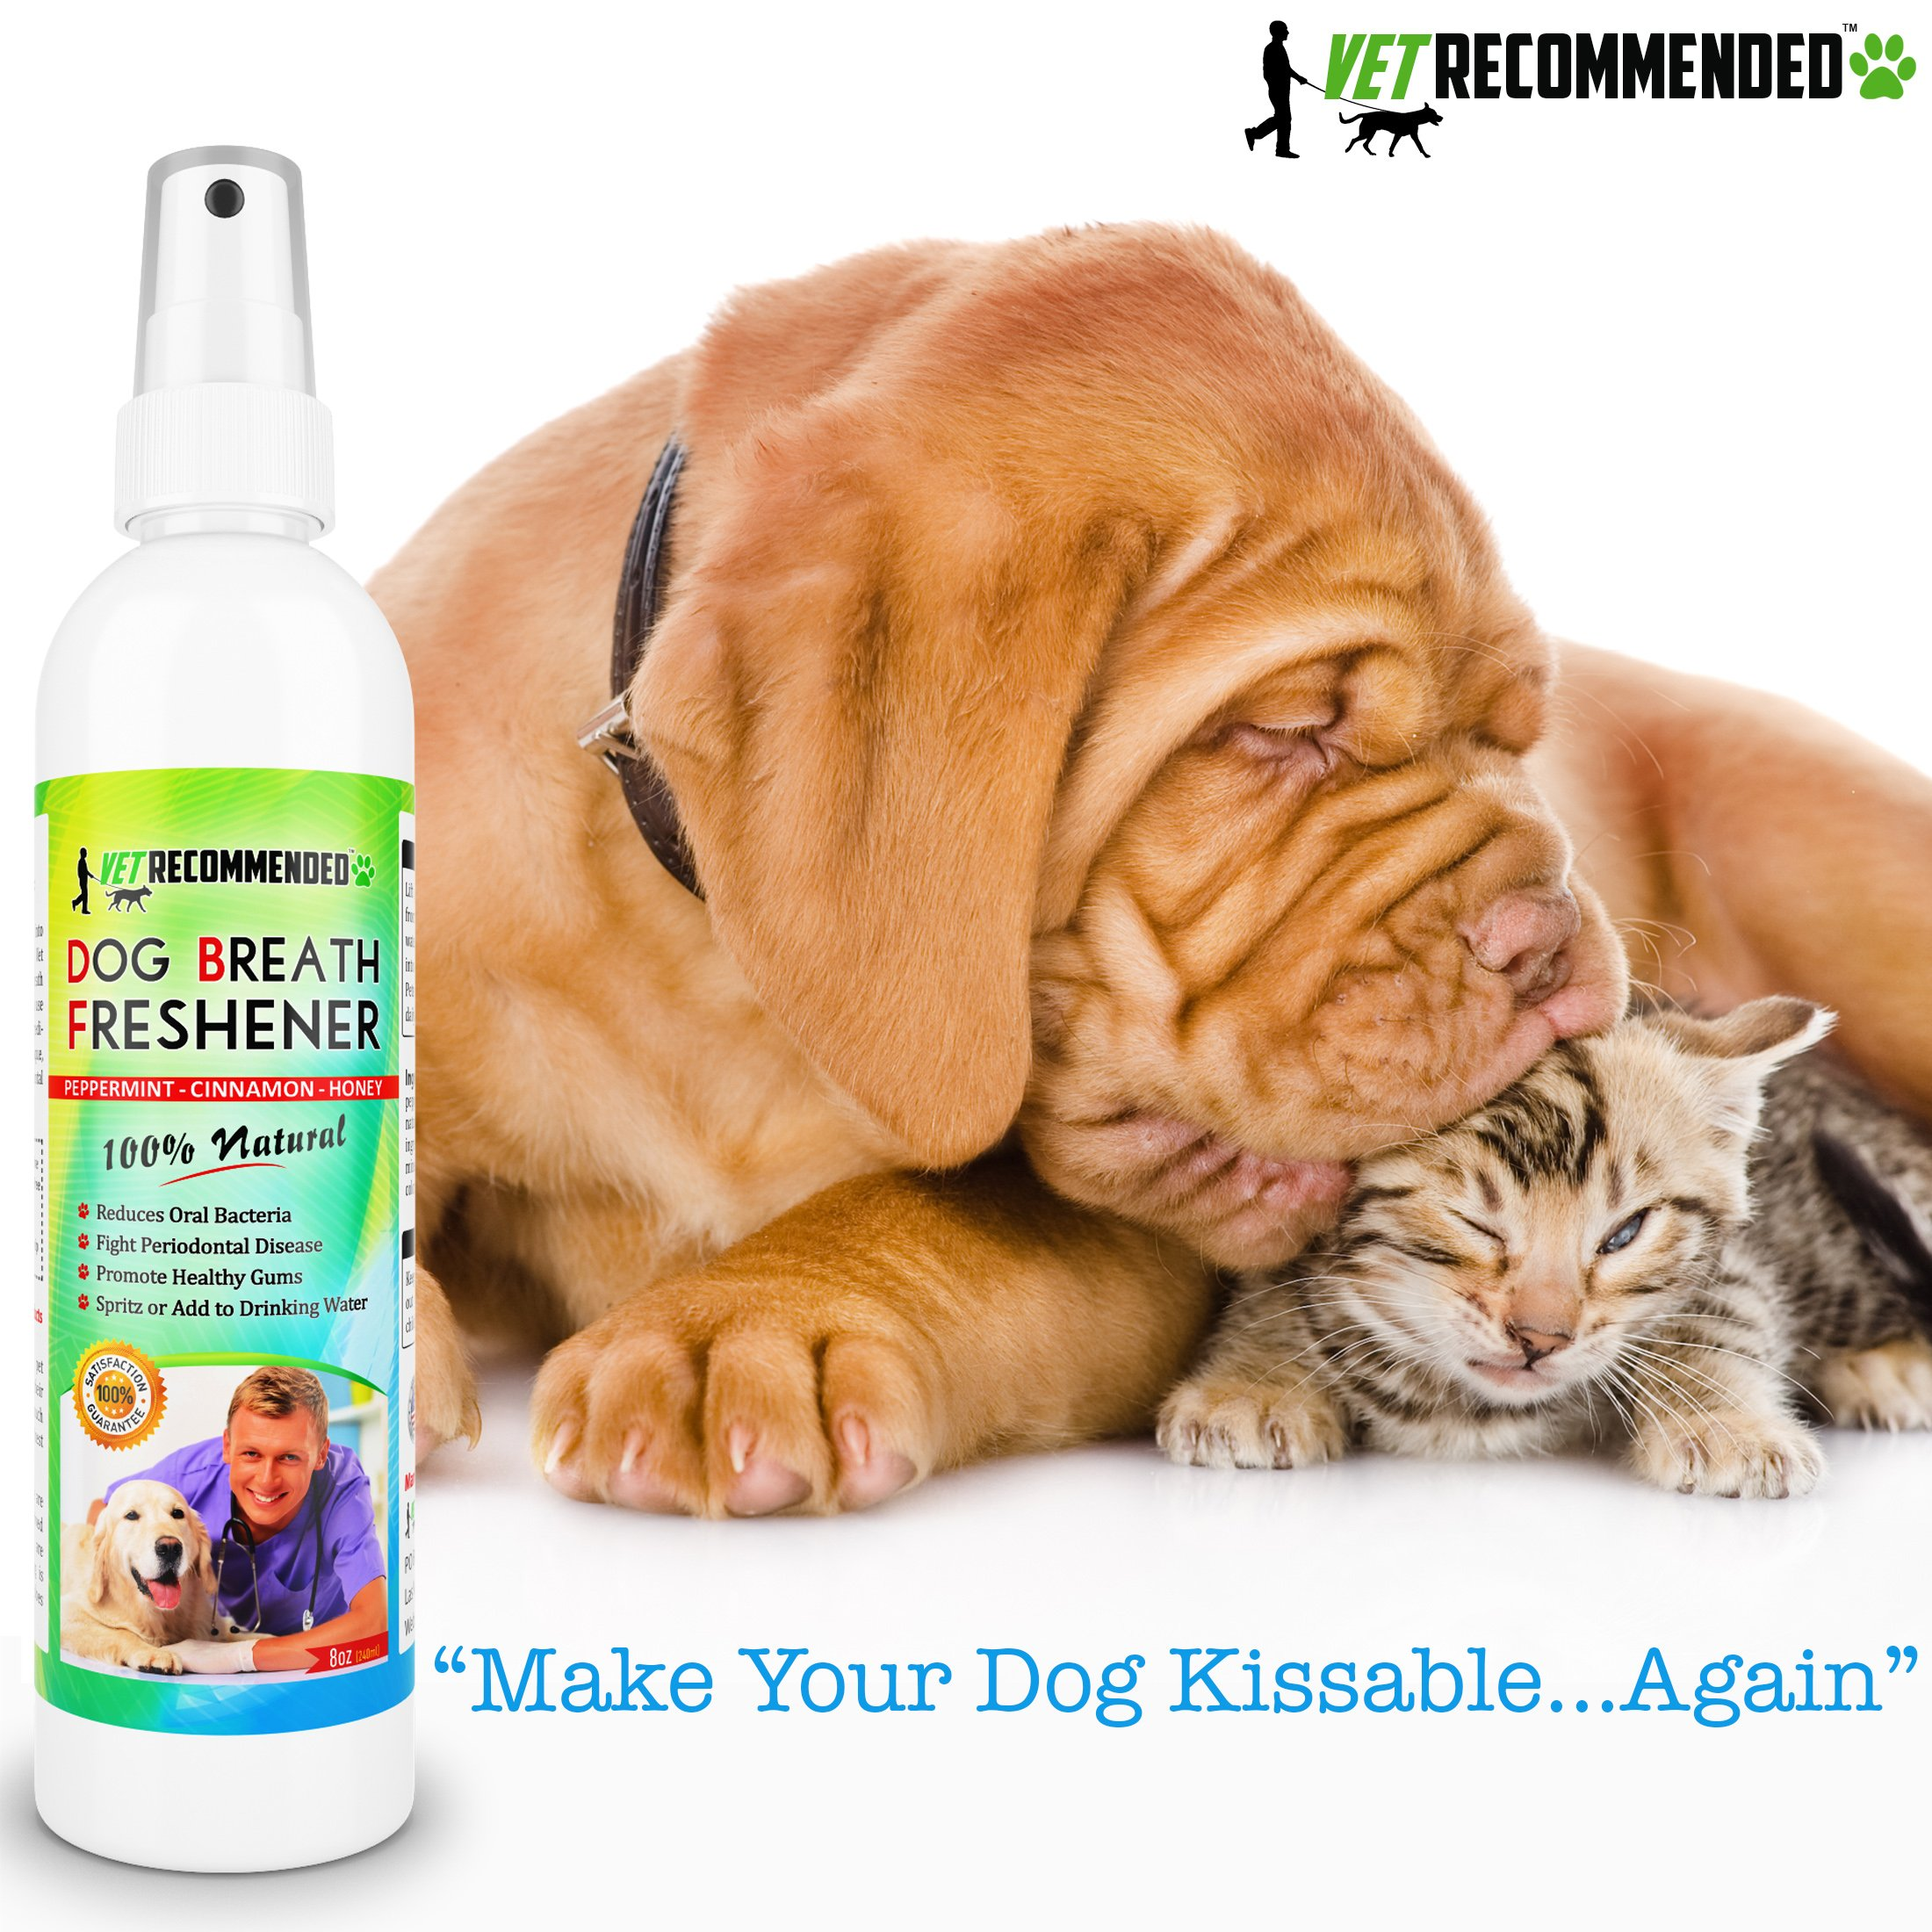 Vet Recommended Dog Breath Freshener & Pet Dental Water Additive (8oz/240ml) All Natural - Perfect for Bad Dog Breath & Dog Teeth Spray. Spray in Mouth or Add to Pet's Drinking Water. USA Made. by Vet Recommended (Image #3)